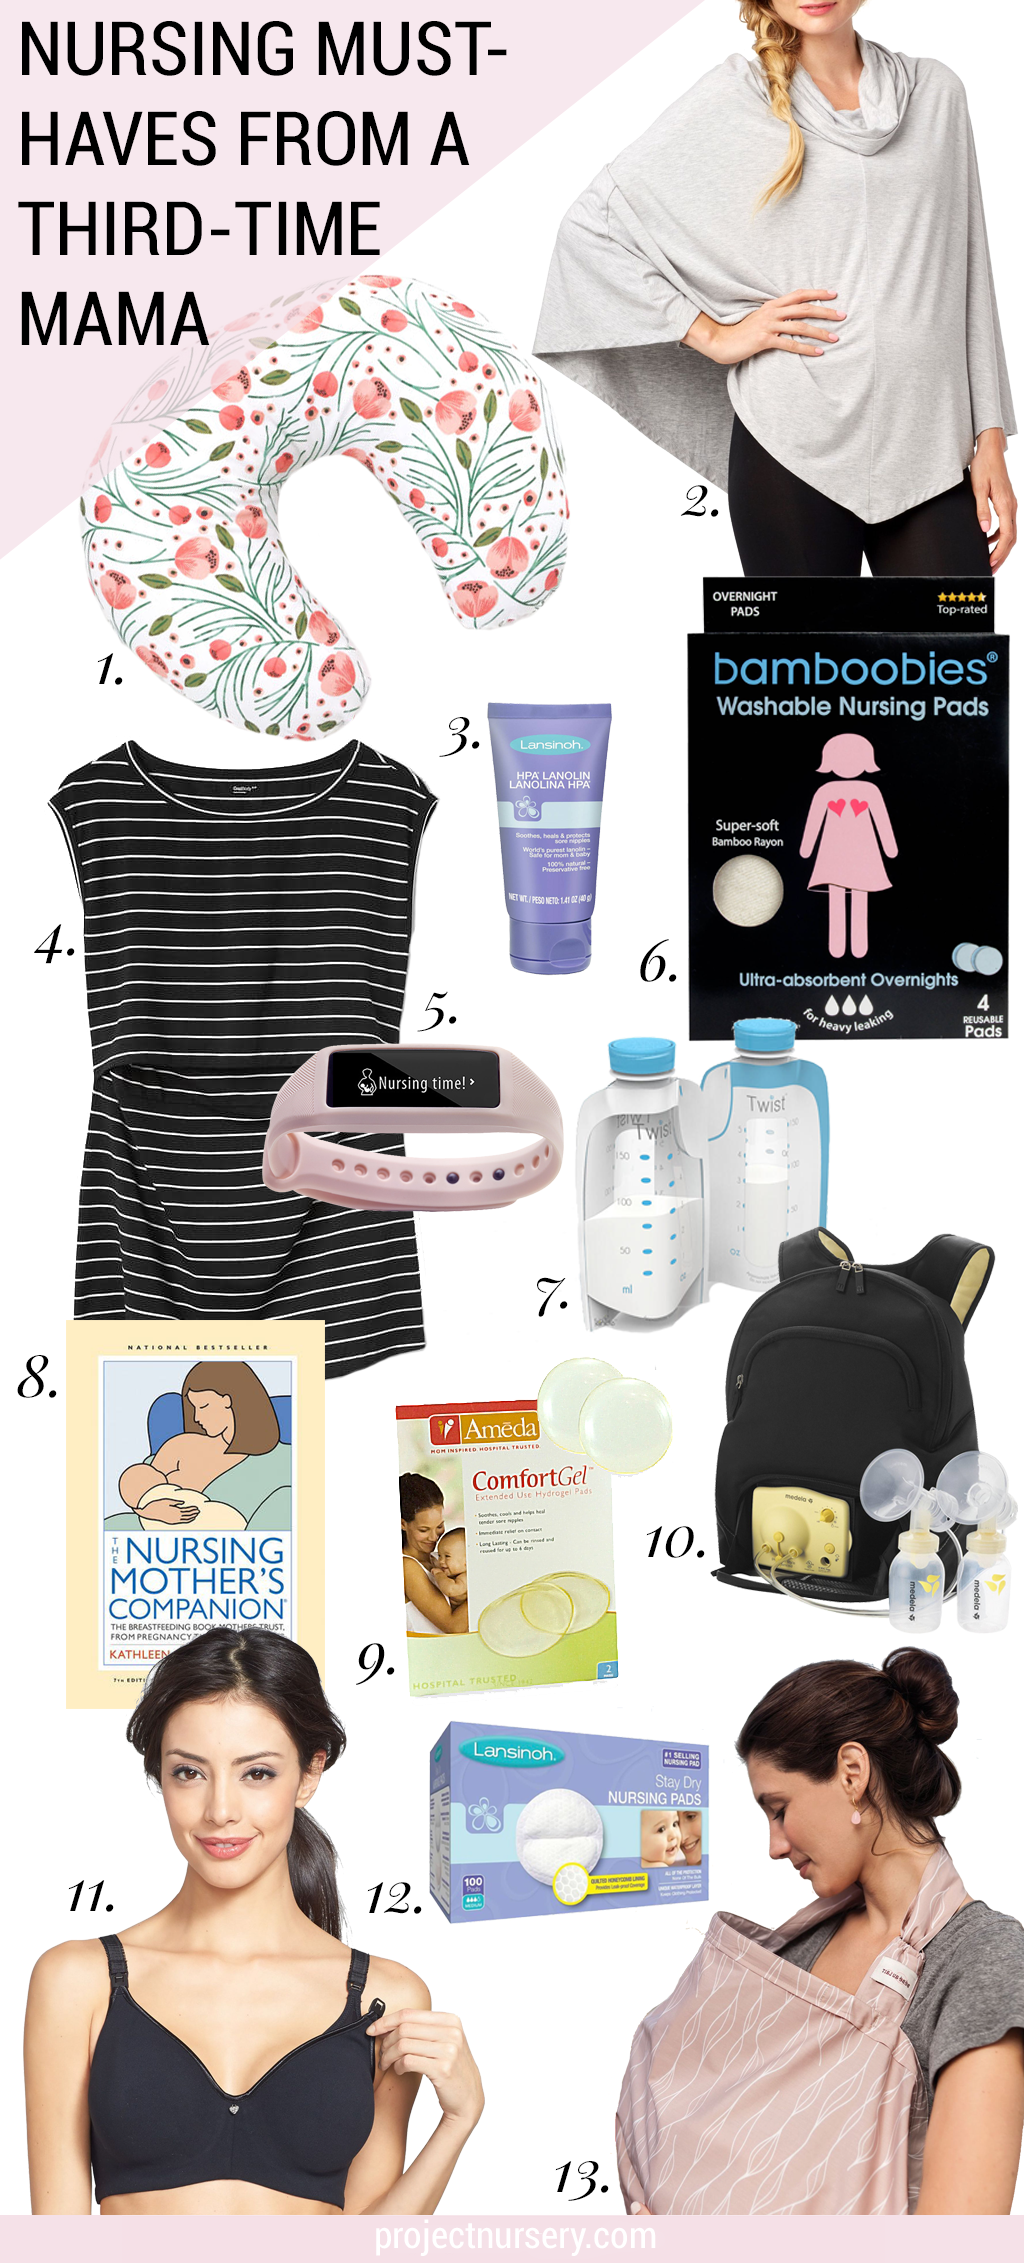 Nursing Must-Haves from a Third-Time Mama...